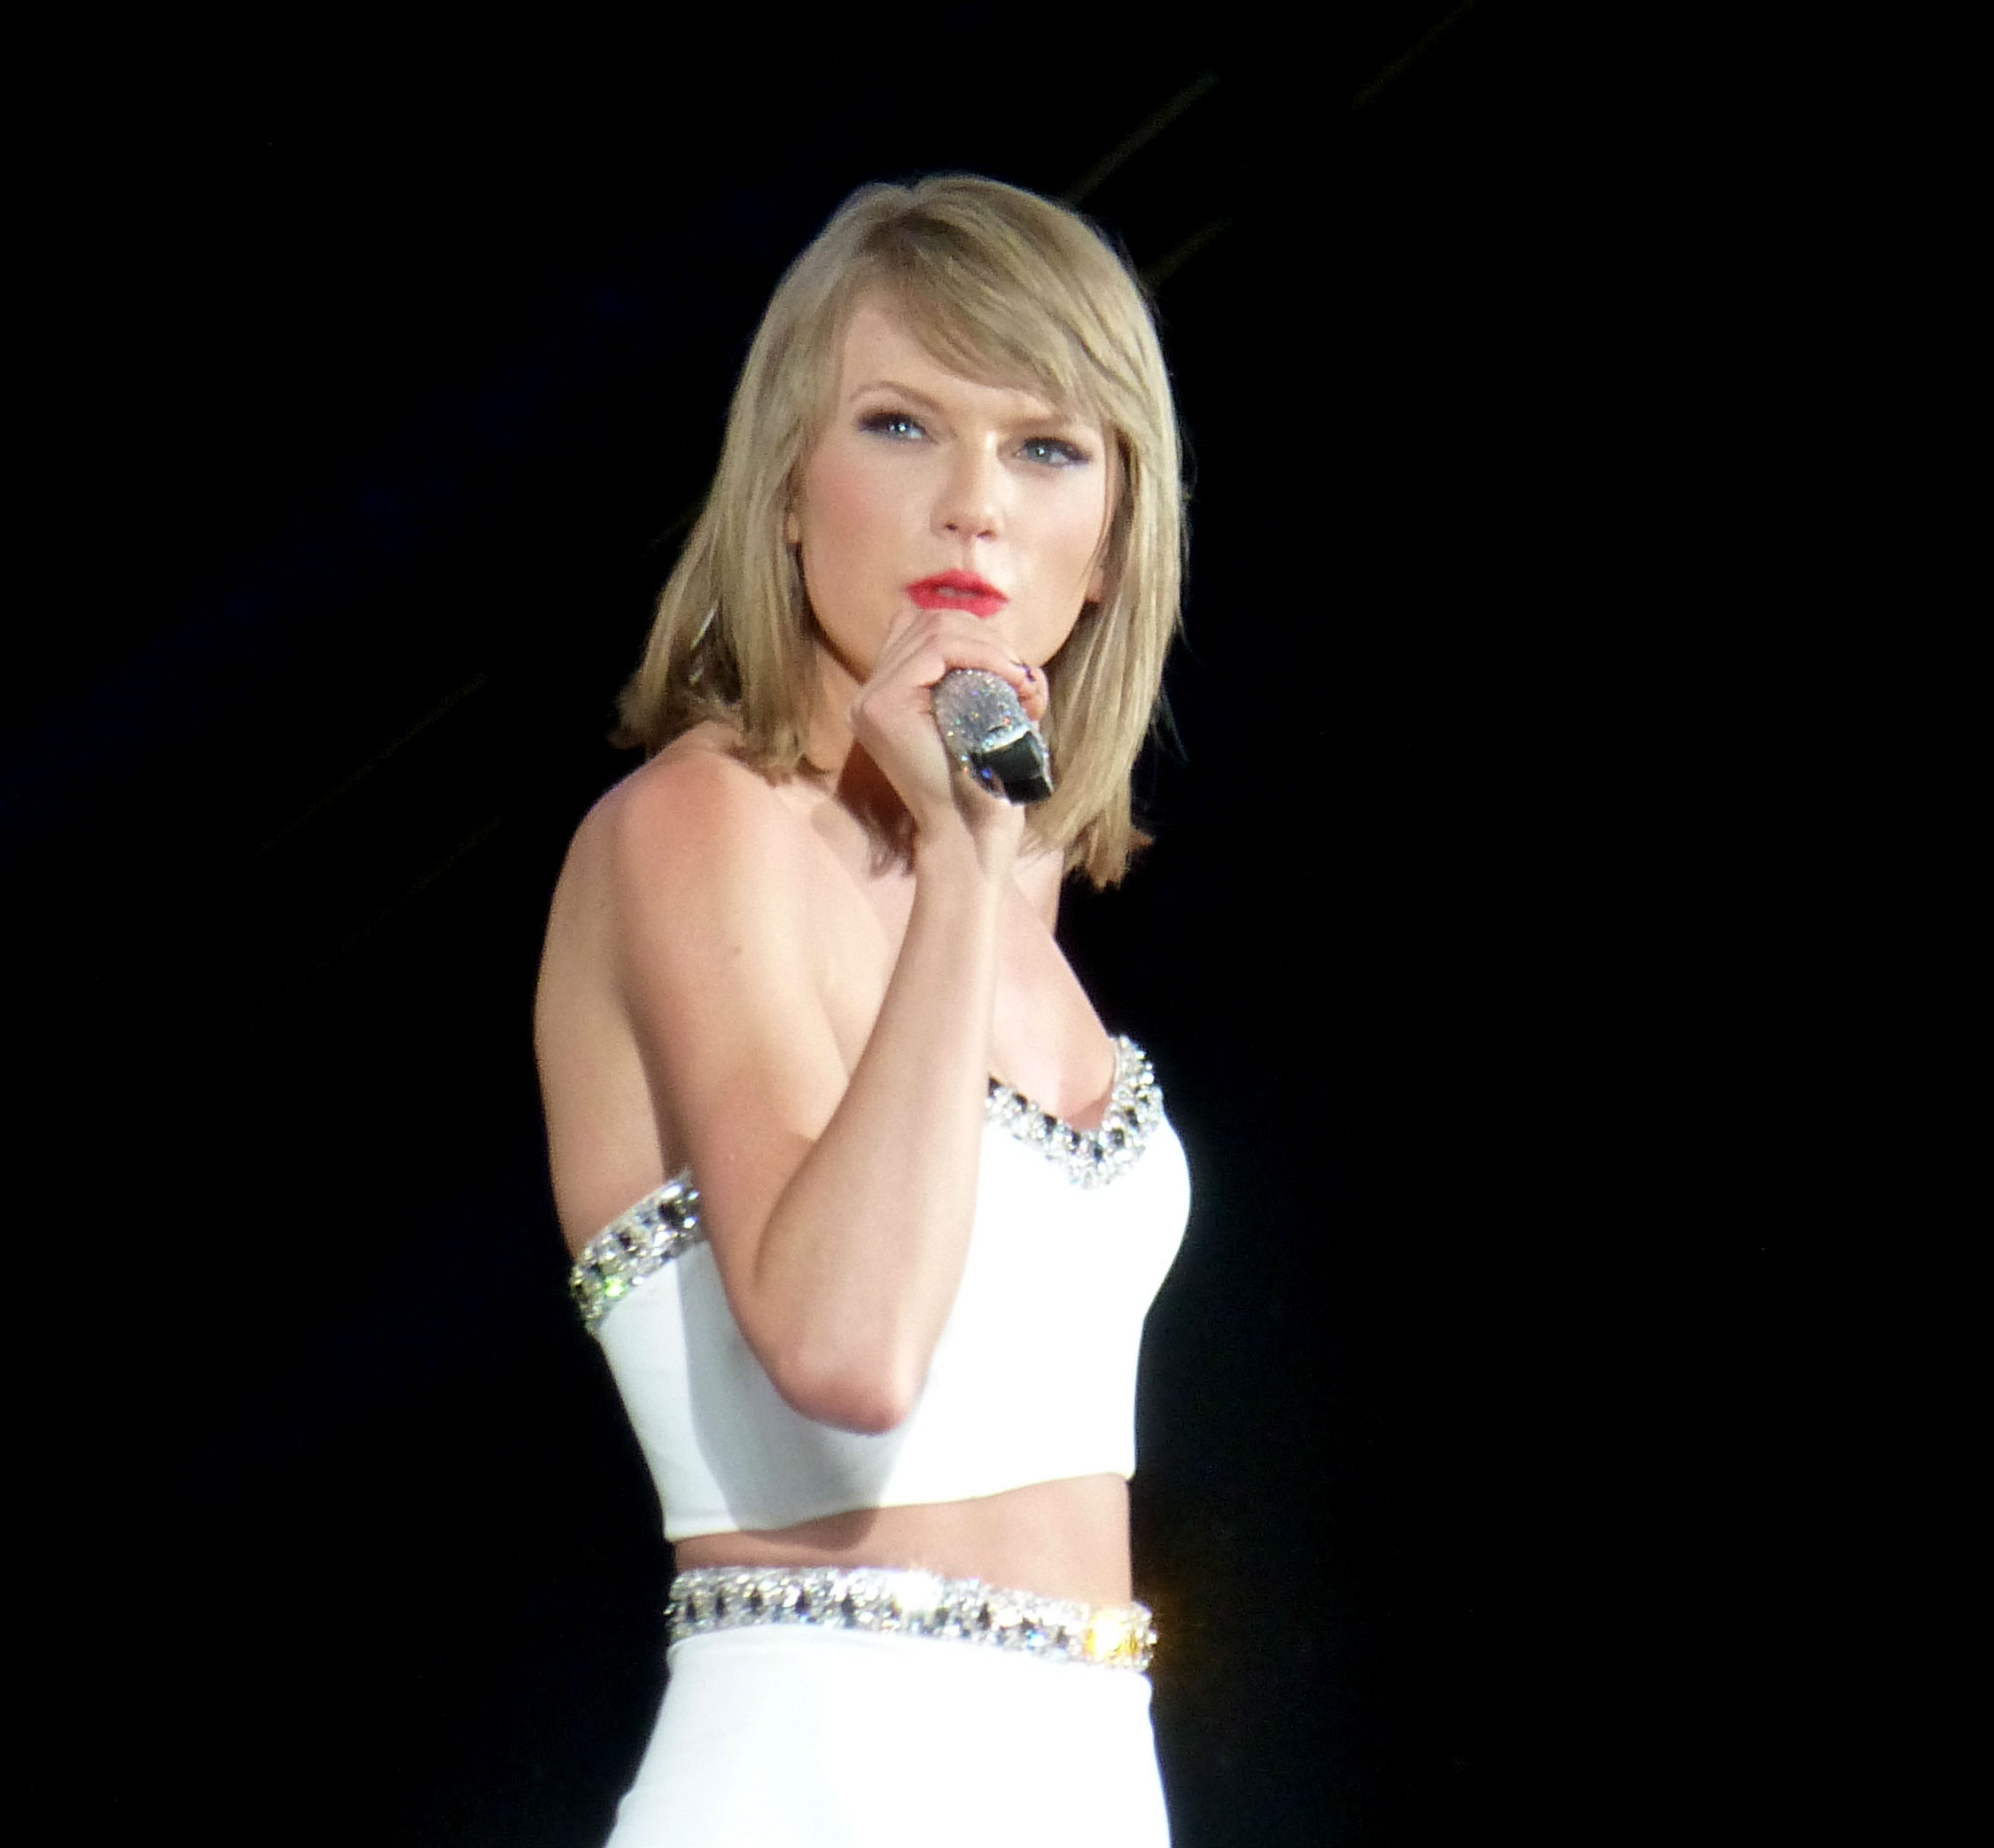 Idris Elba, Taylor Swift among chairs for Met gala in May